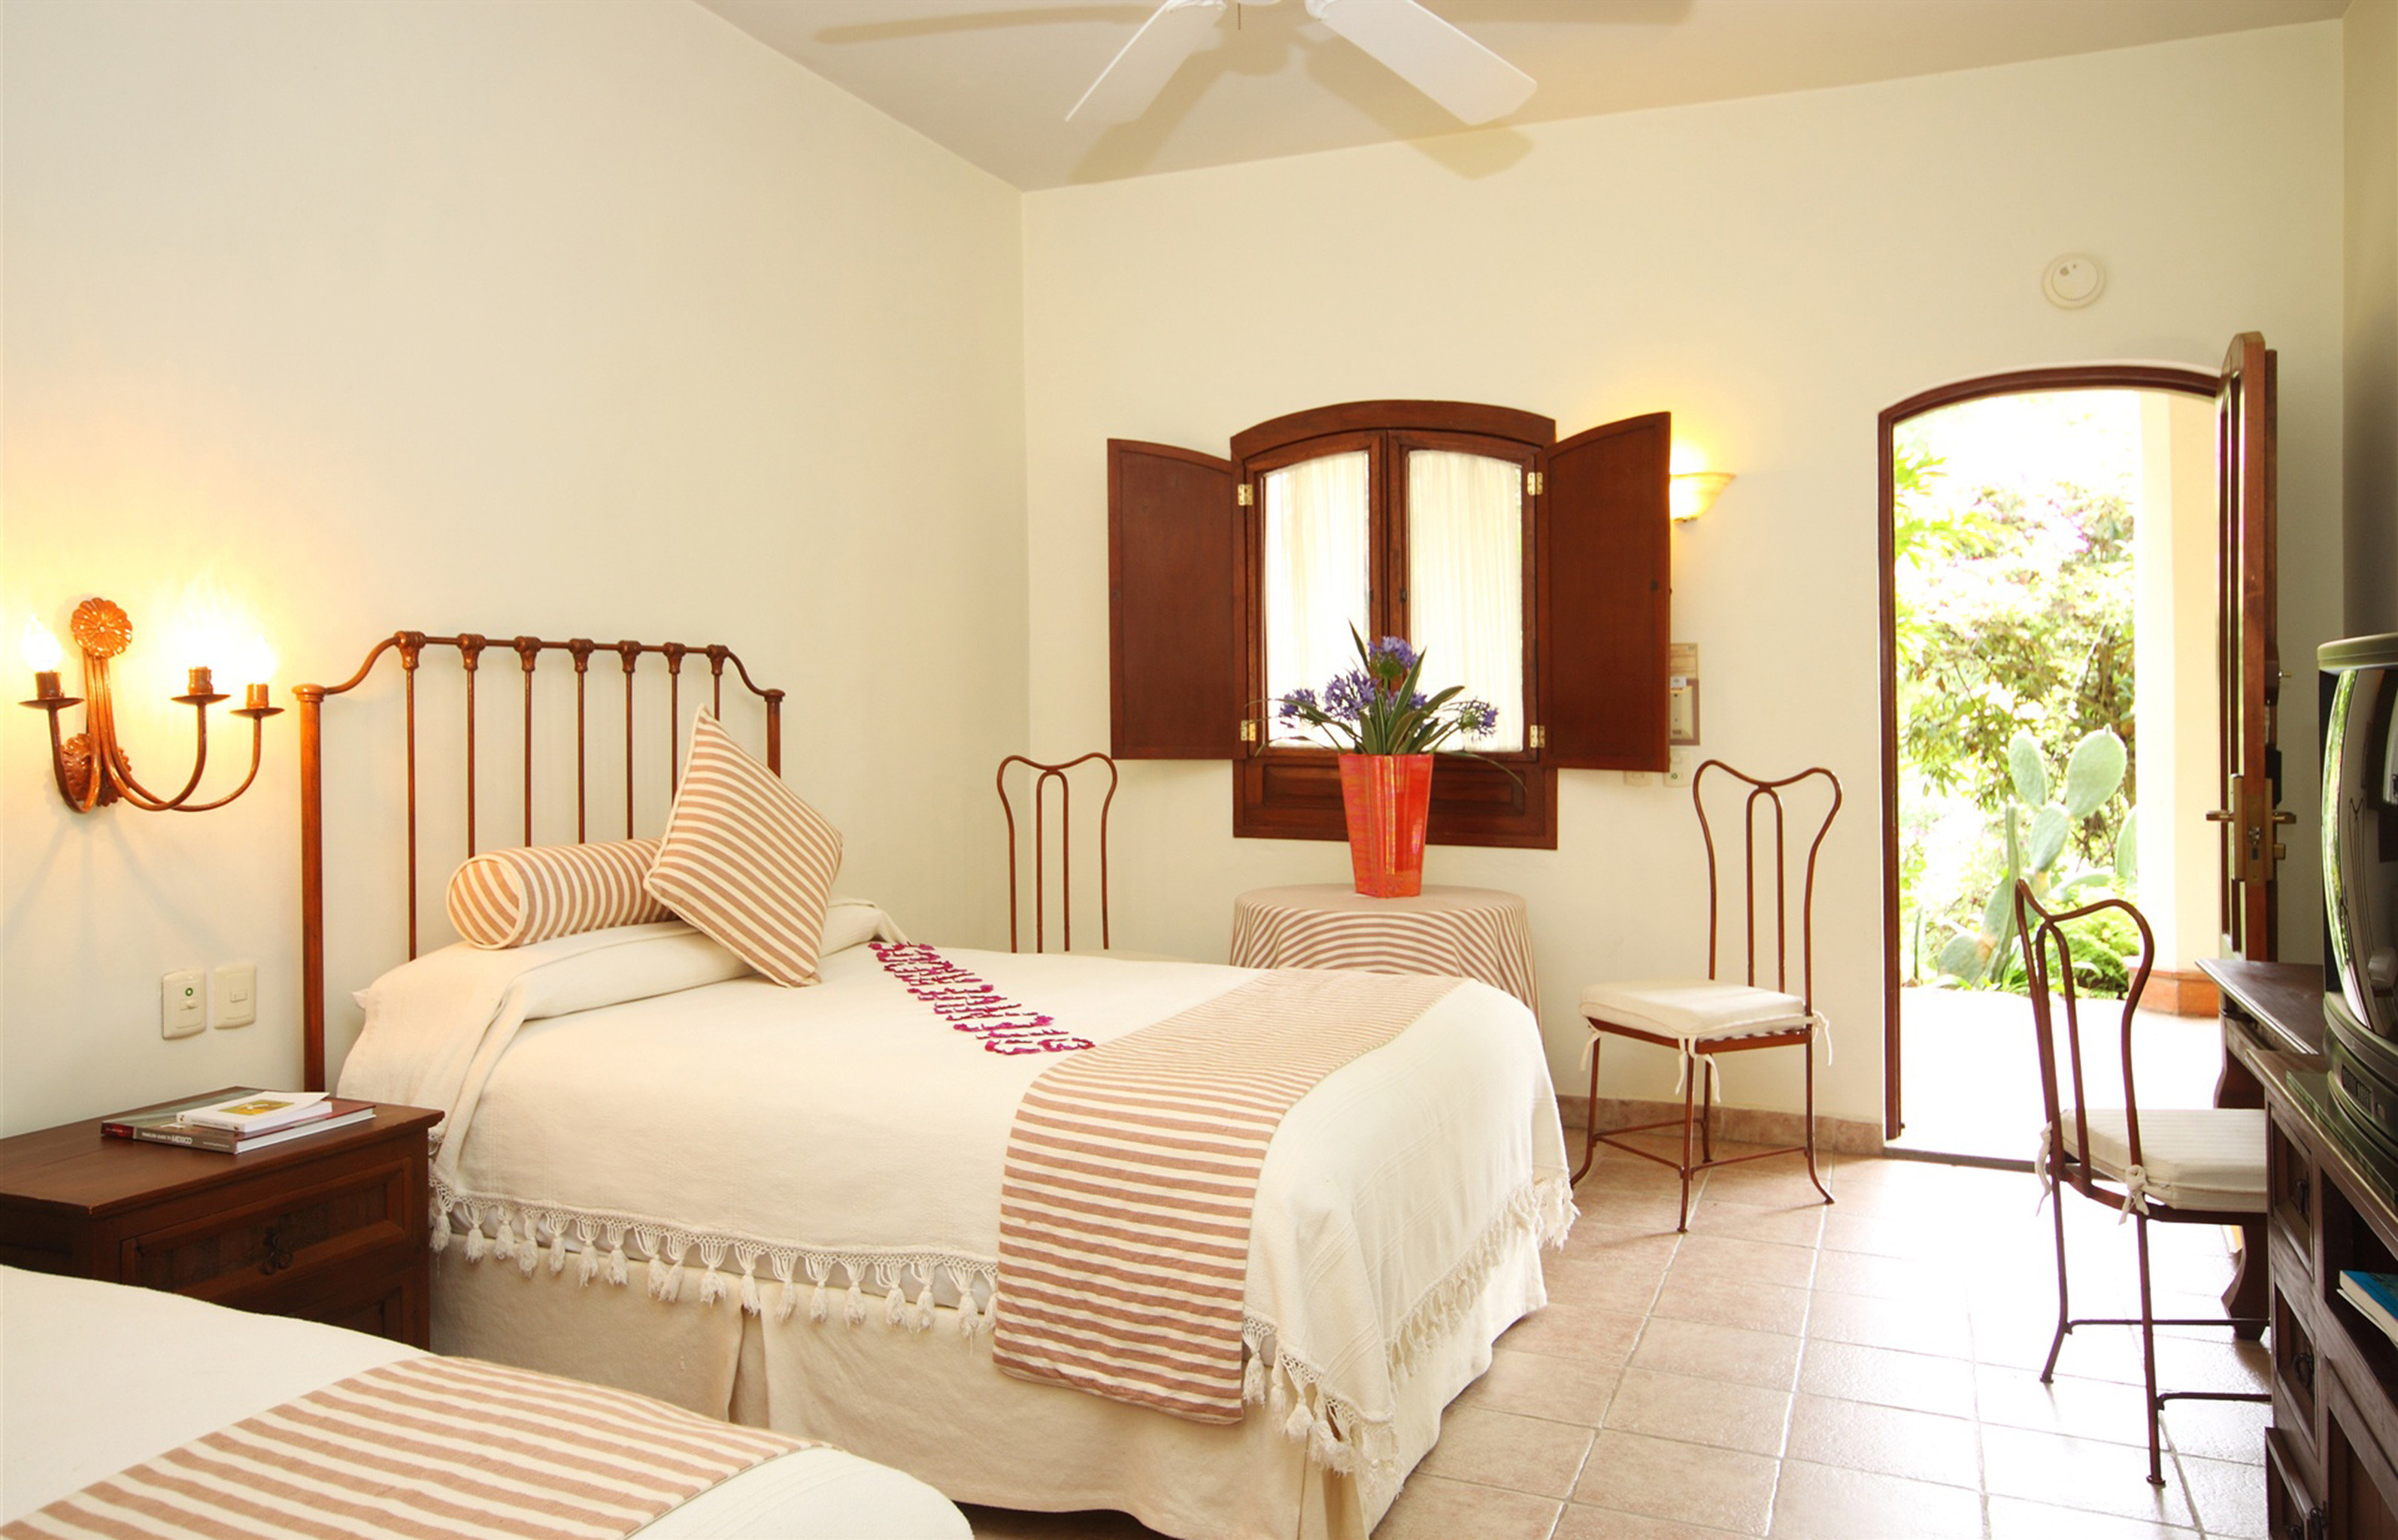 Bedroom Family Rustic property Suite cottage home living room Villa